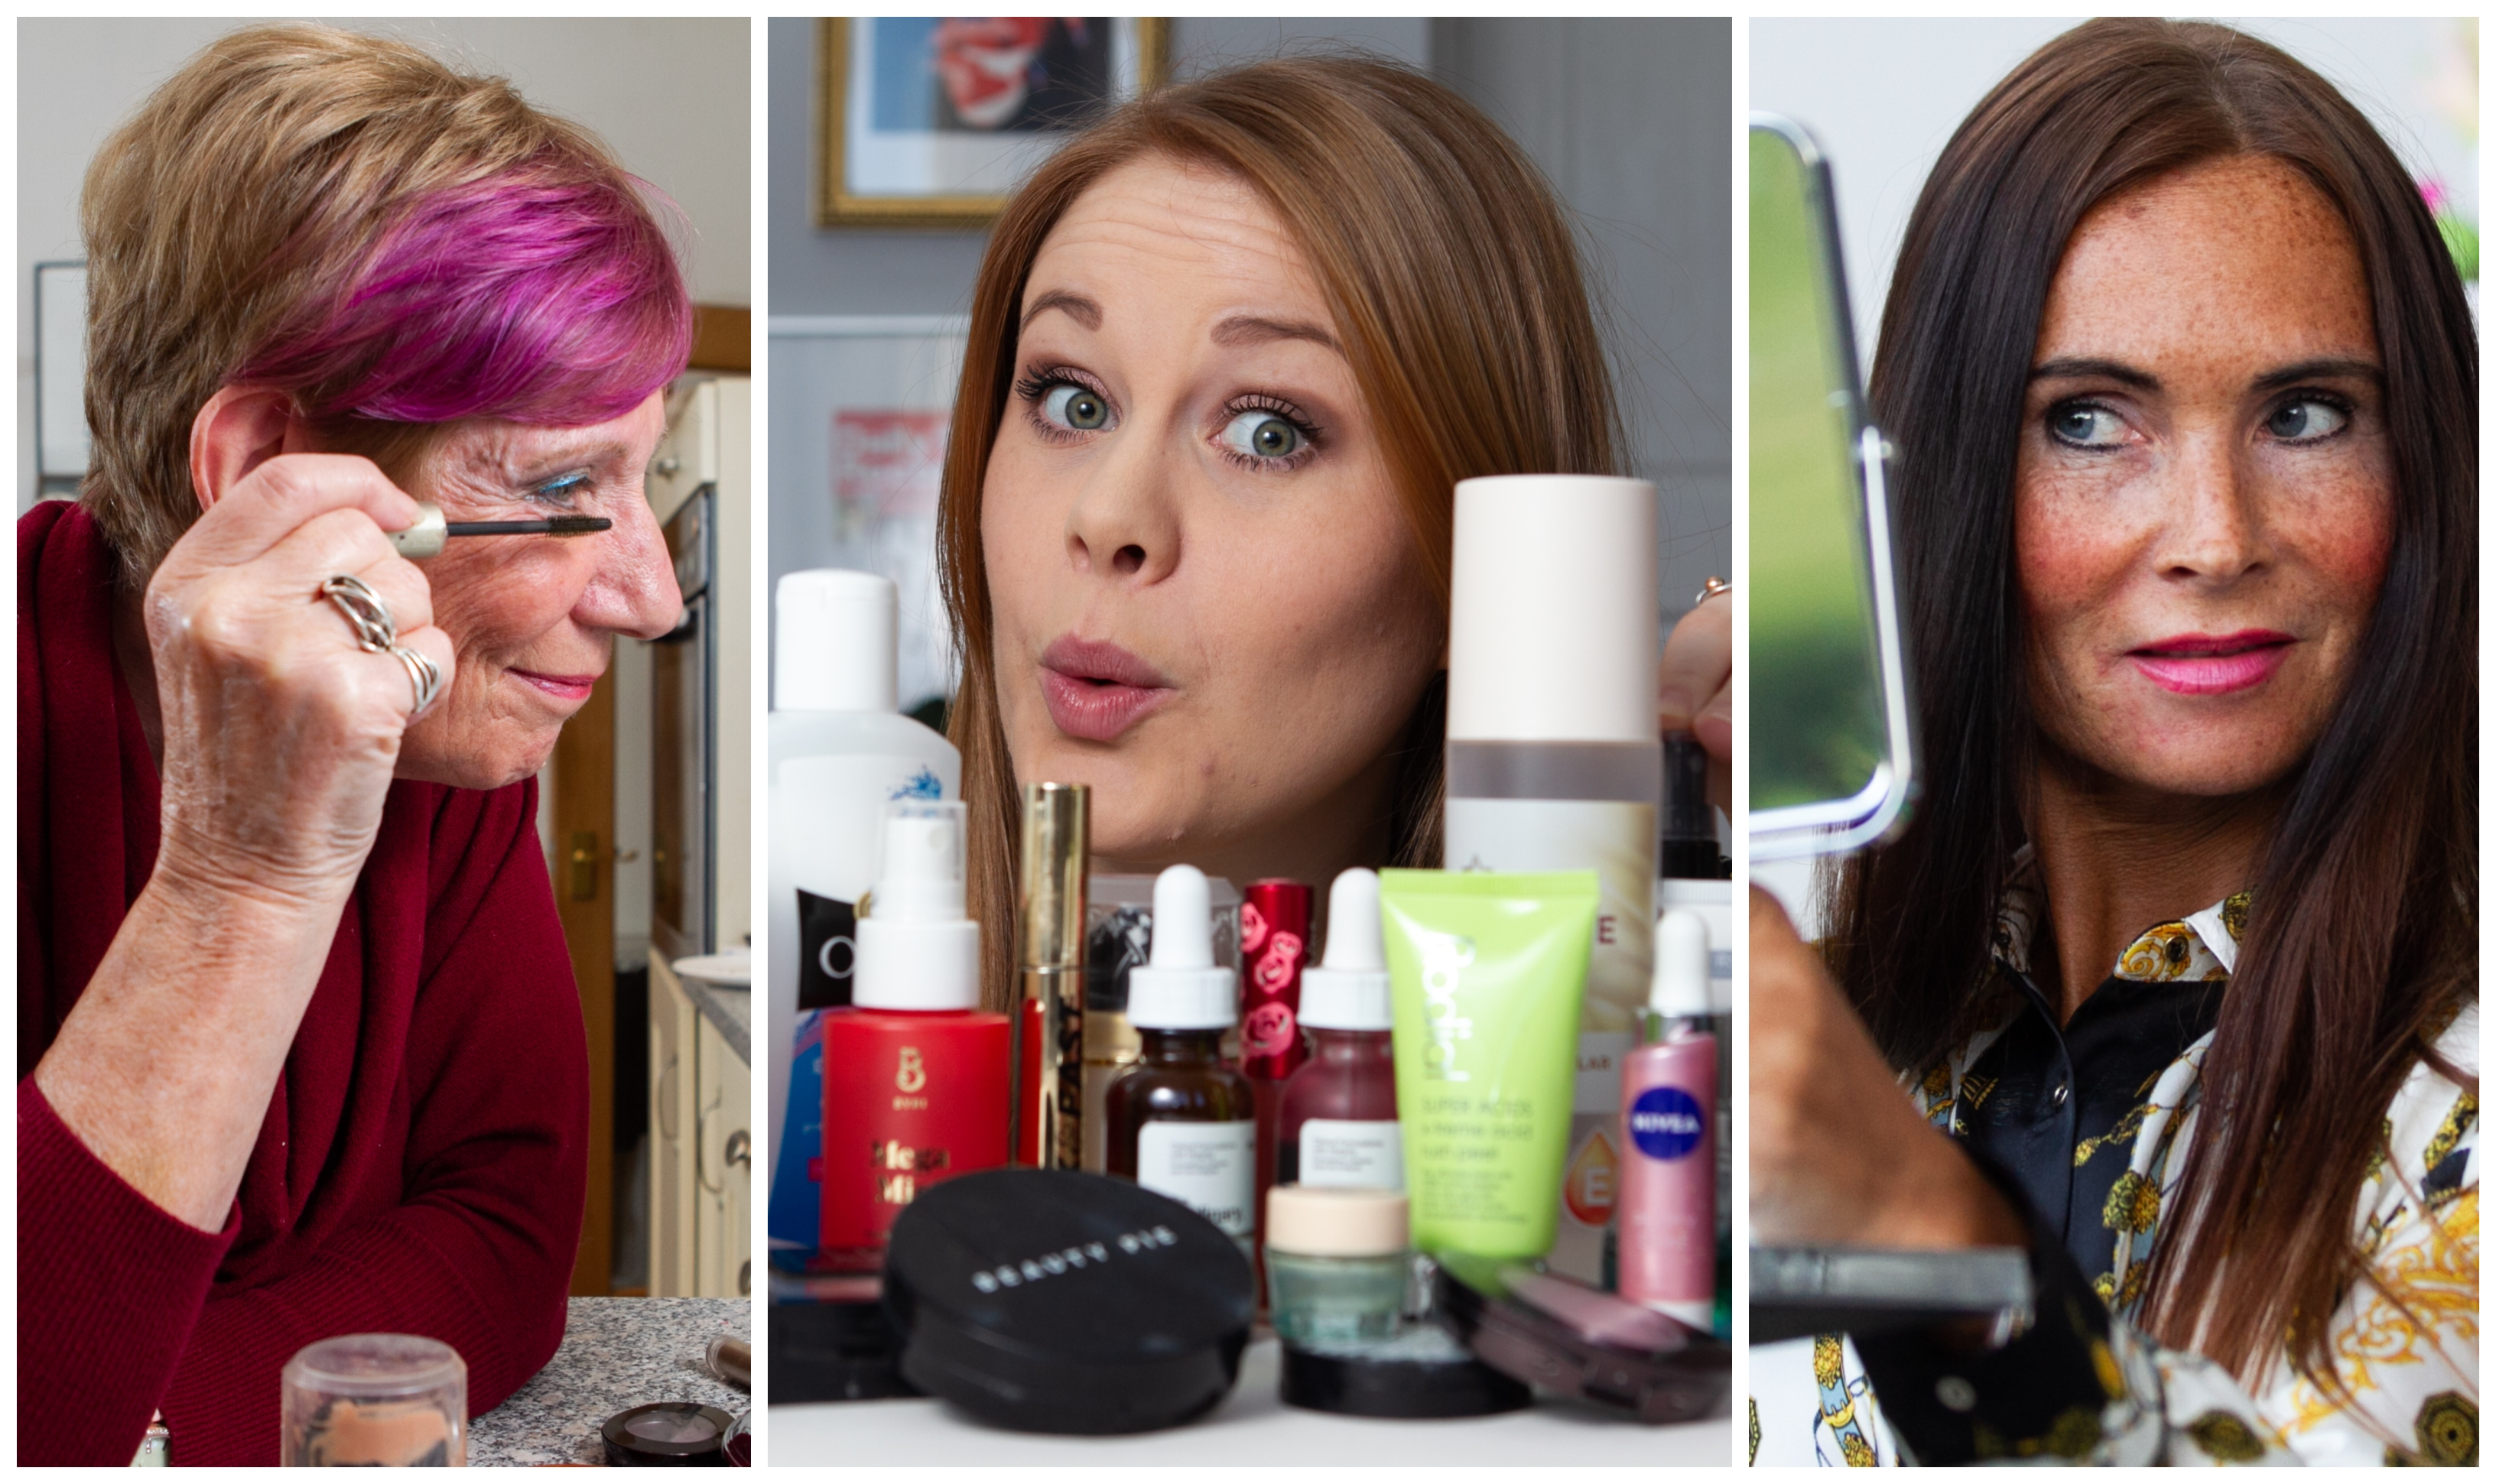 Val, Alice and Wendy share the products they buy